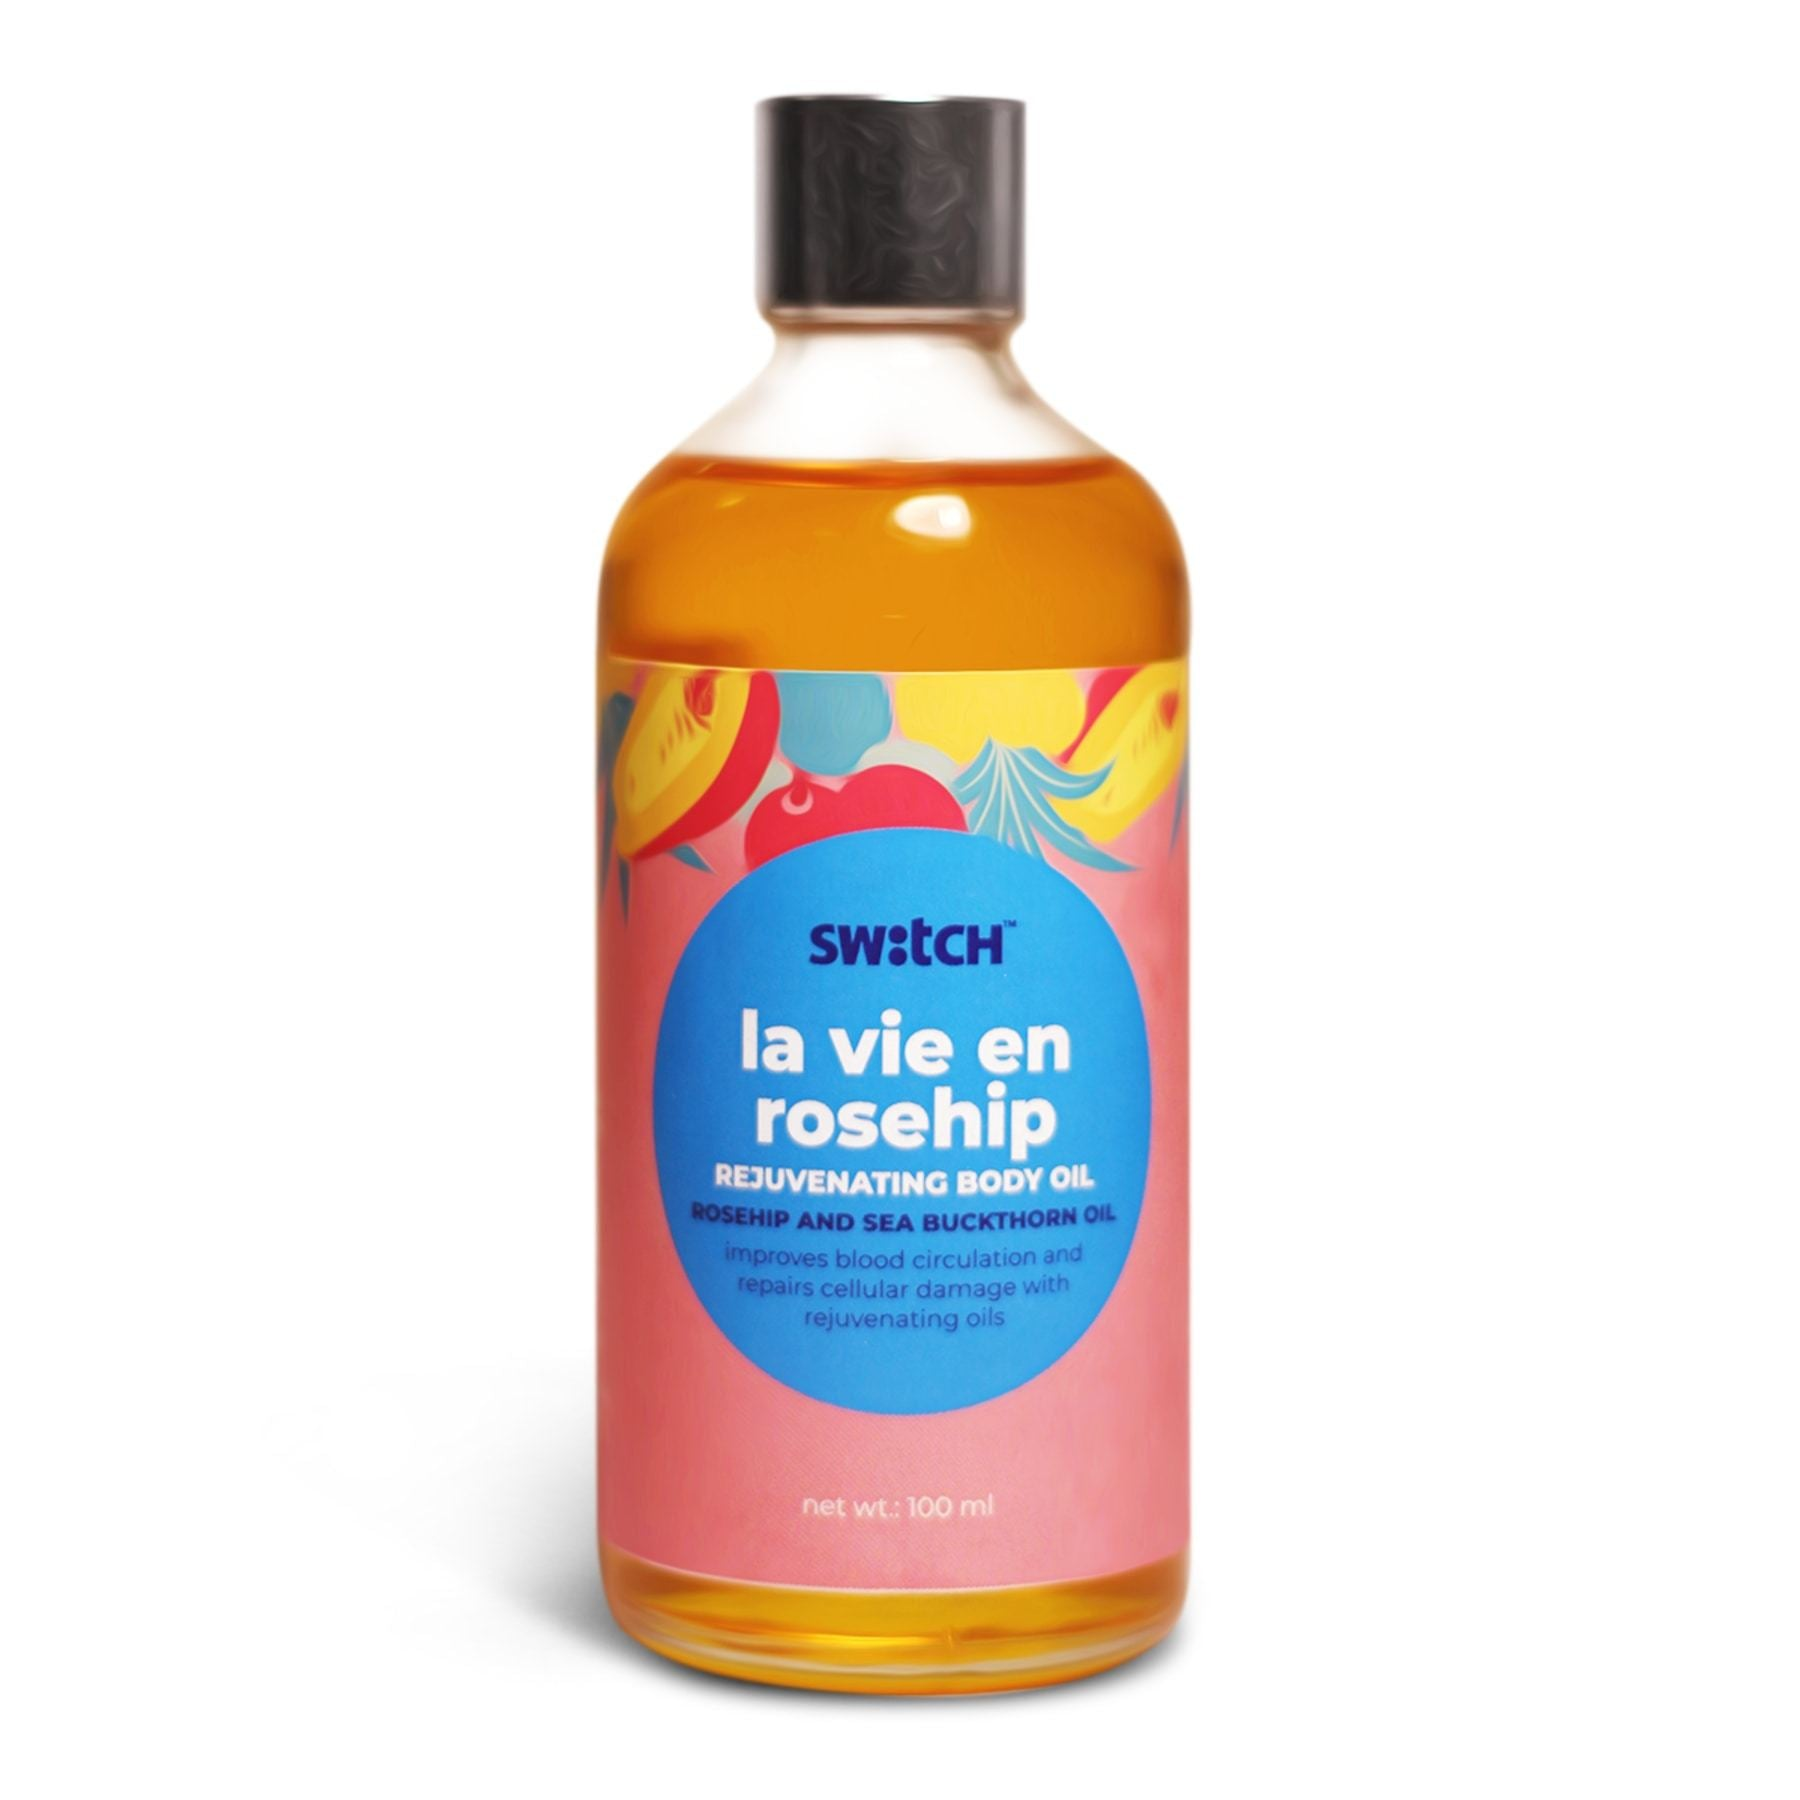 This is an image of La Vie En Rosehip Massage Oil from Switch Fix on www.sublimelife.in